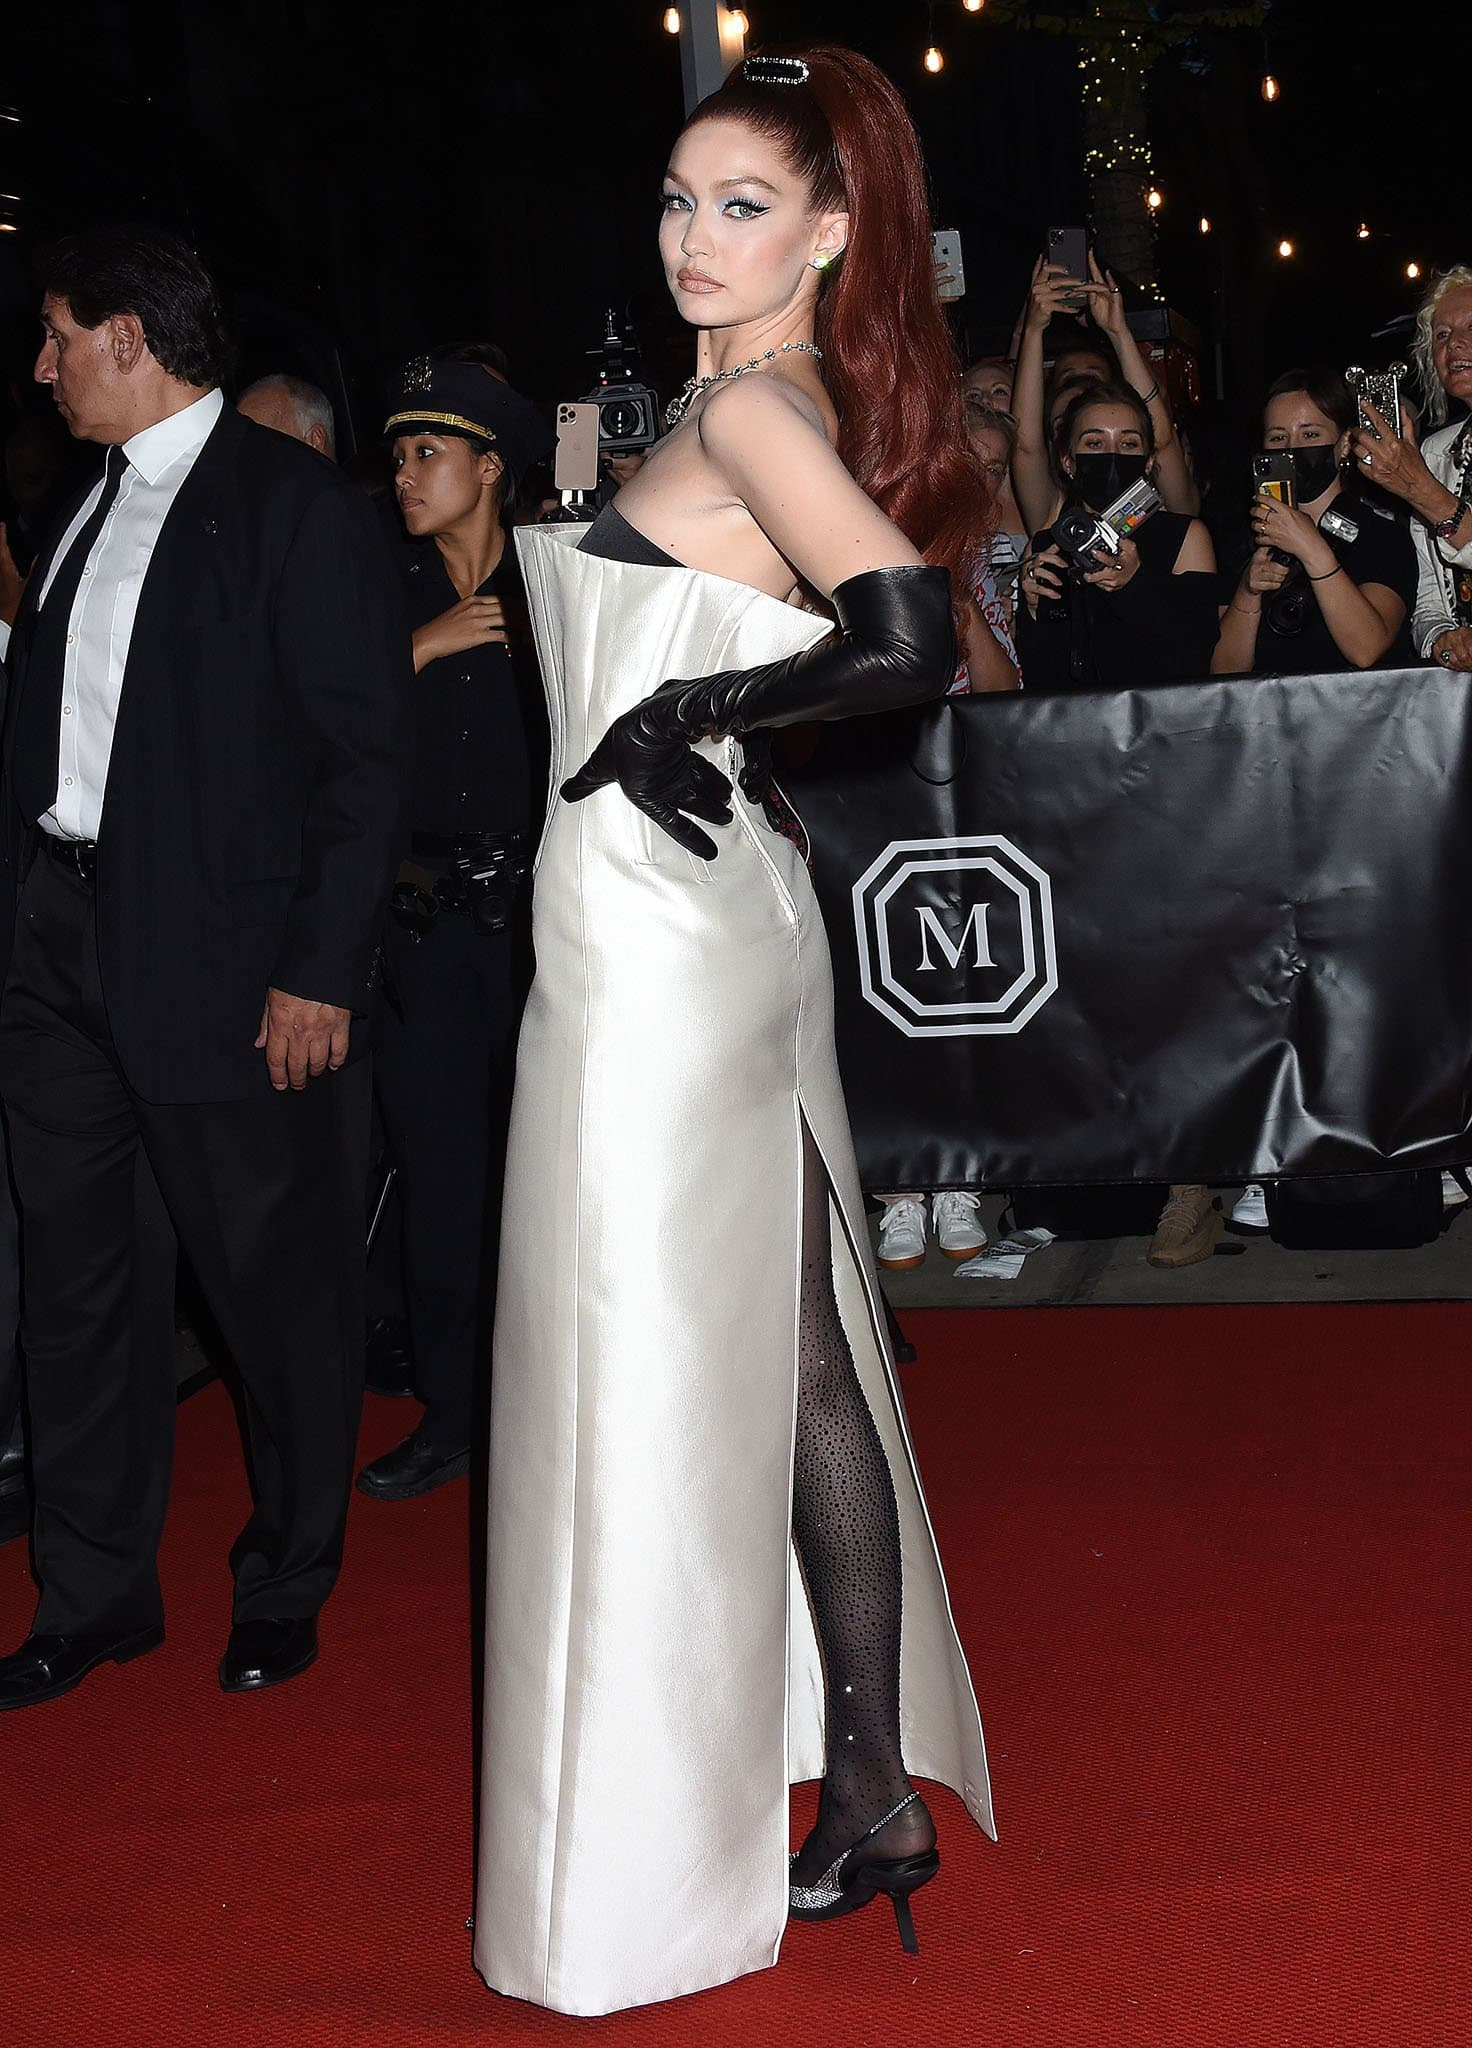 With her red hair high up in a retro-inspired ponytail, Gigi Hadid shows off her curves in a custom Prada column gown